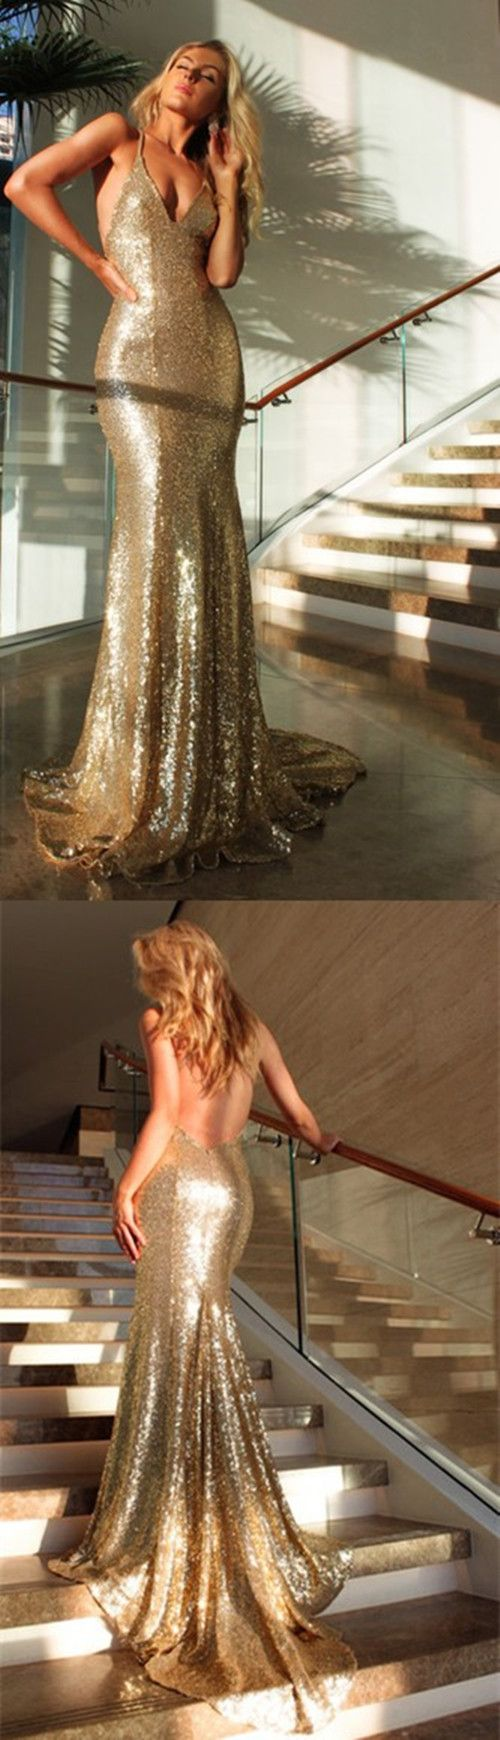 evening dresses,sexy back evening dresses,gold sequins prom dresses,prom dresses for teens,long cheap prom dresses,sexy mermaid evening dresses,spaghetti straps prom dresses,